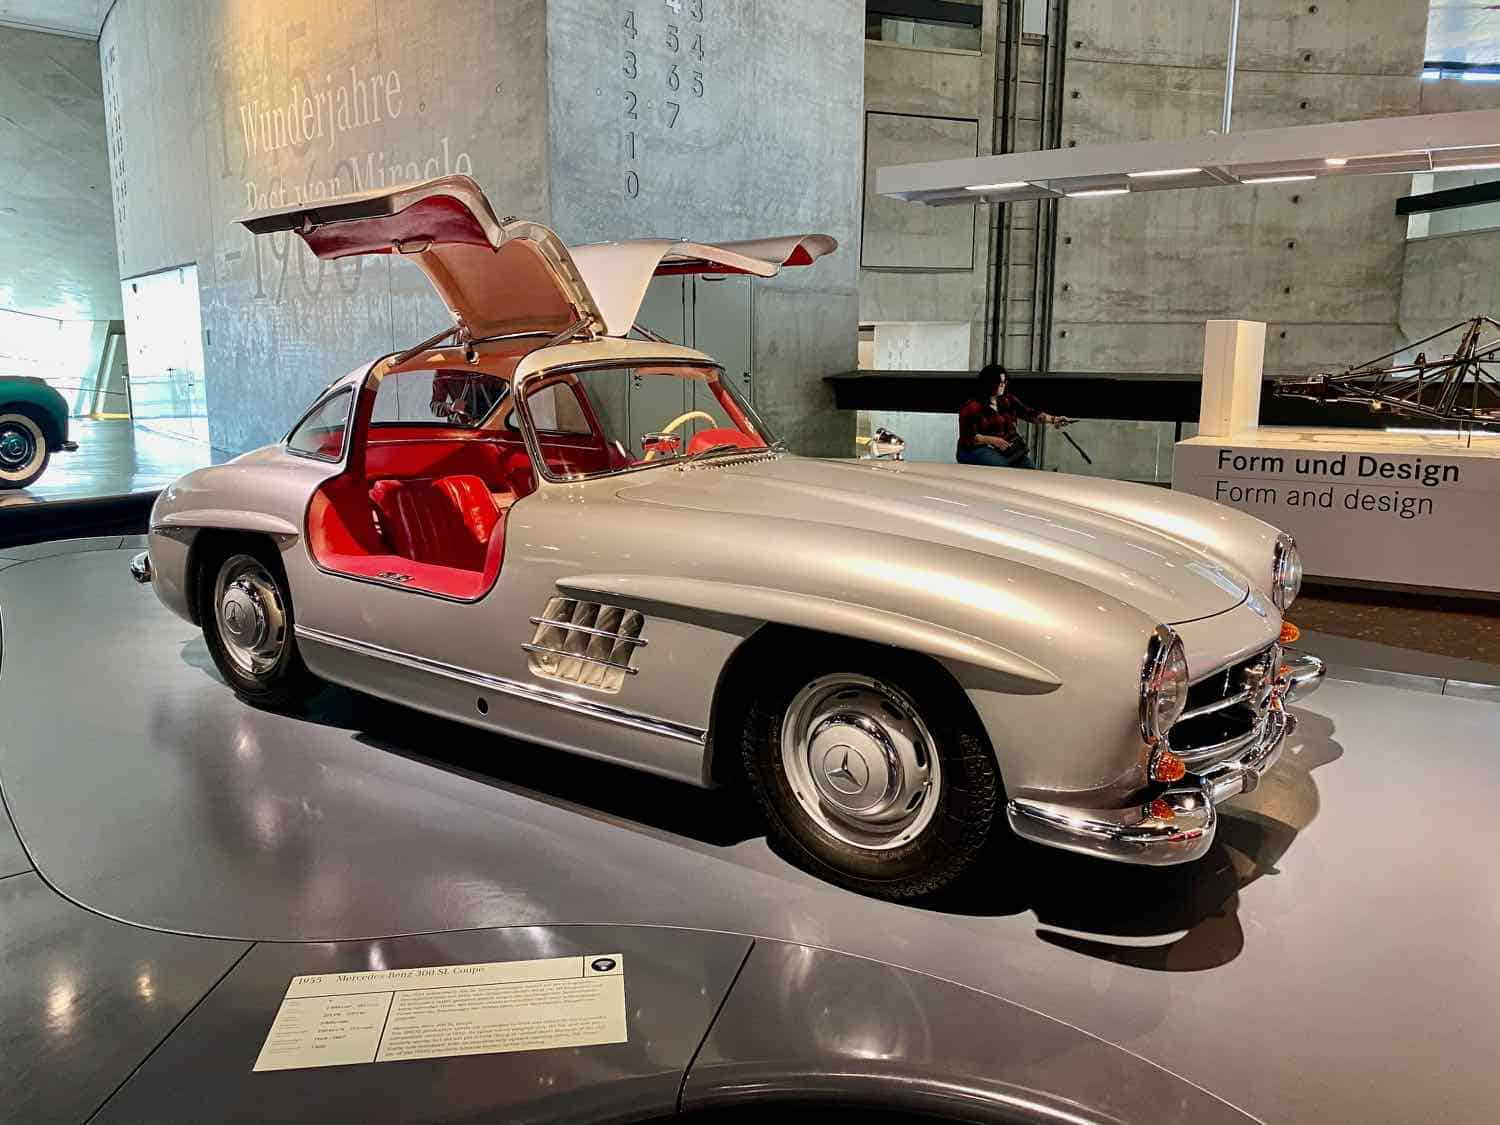 White gull-wing Mercedes-Benz with red interior